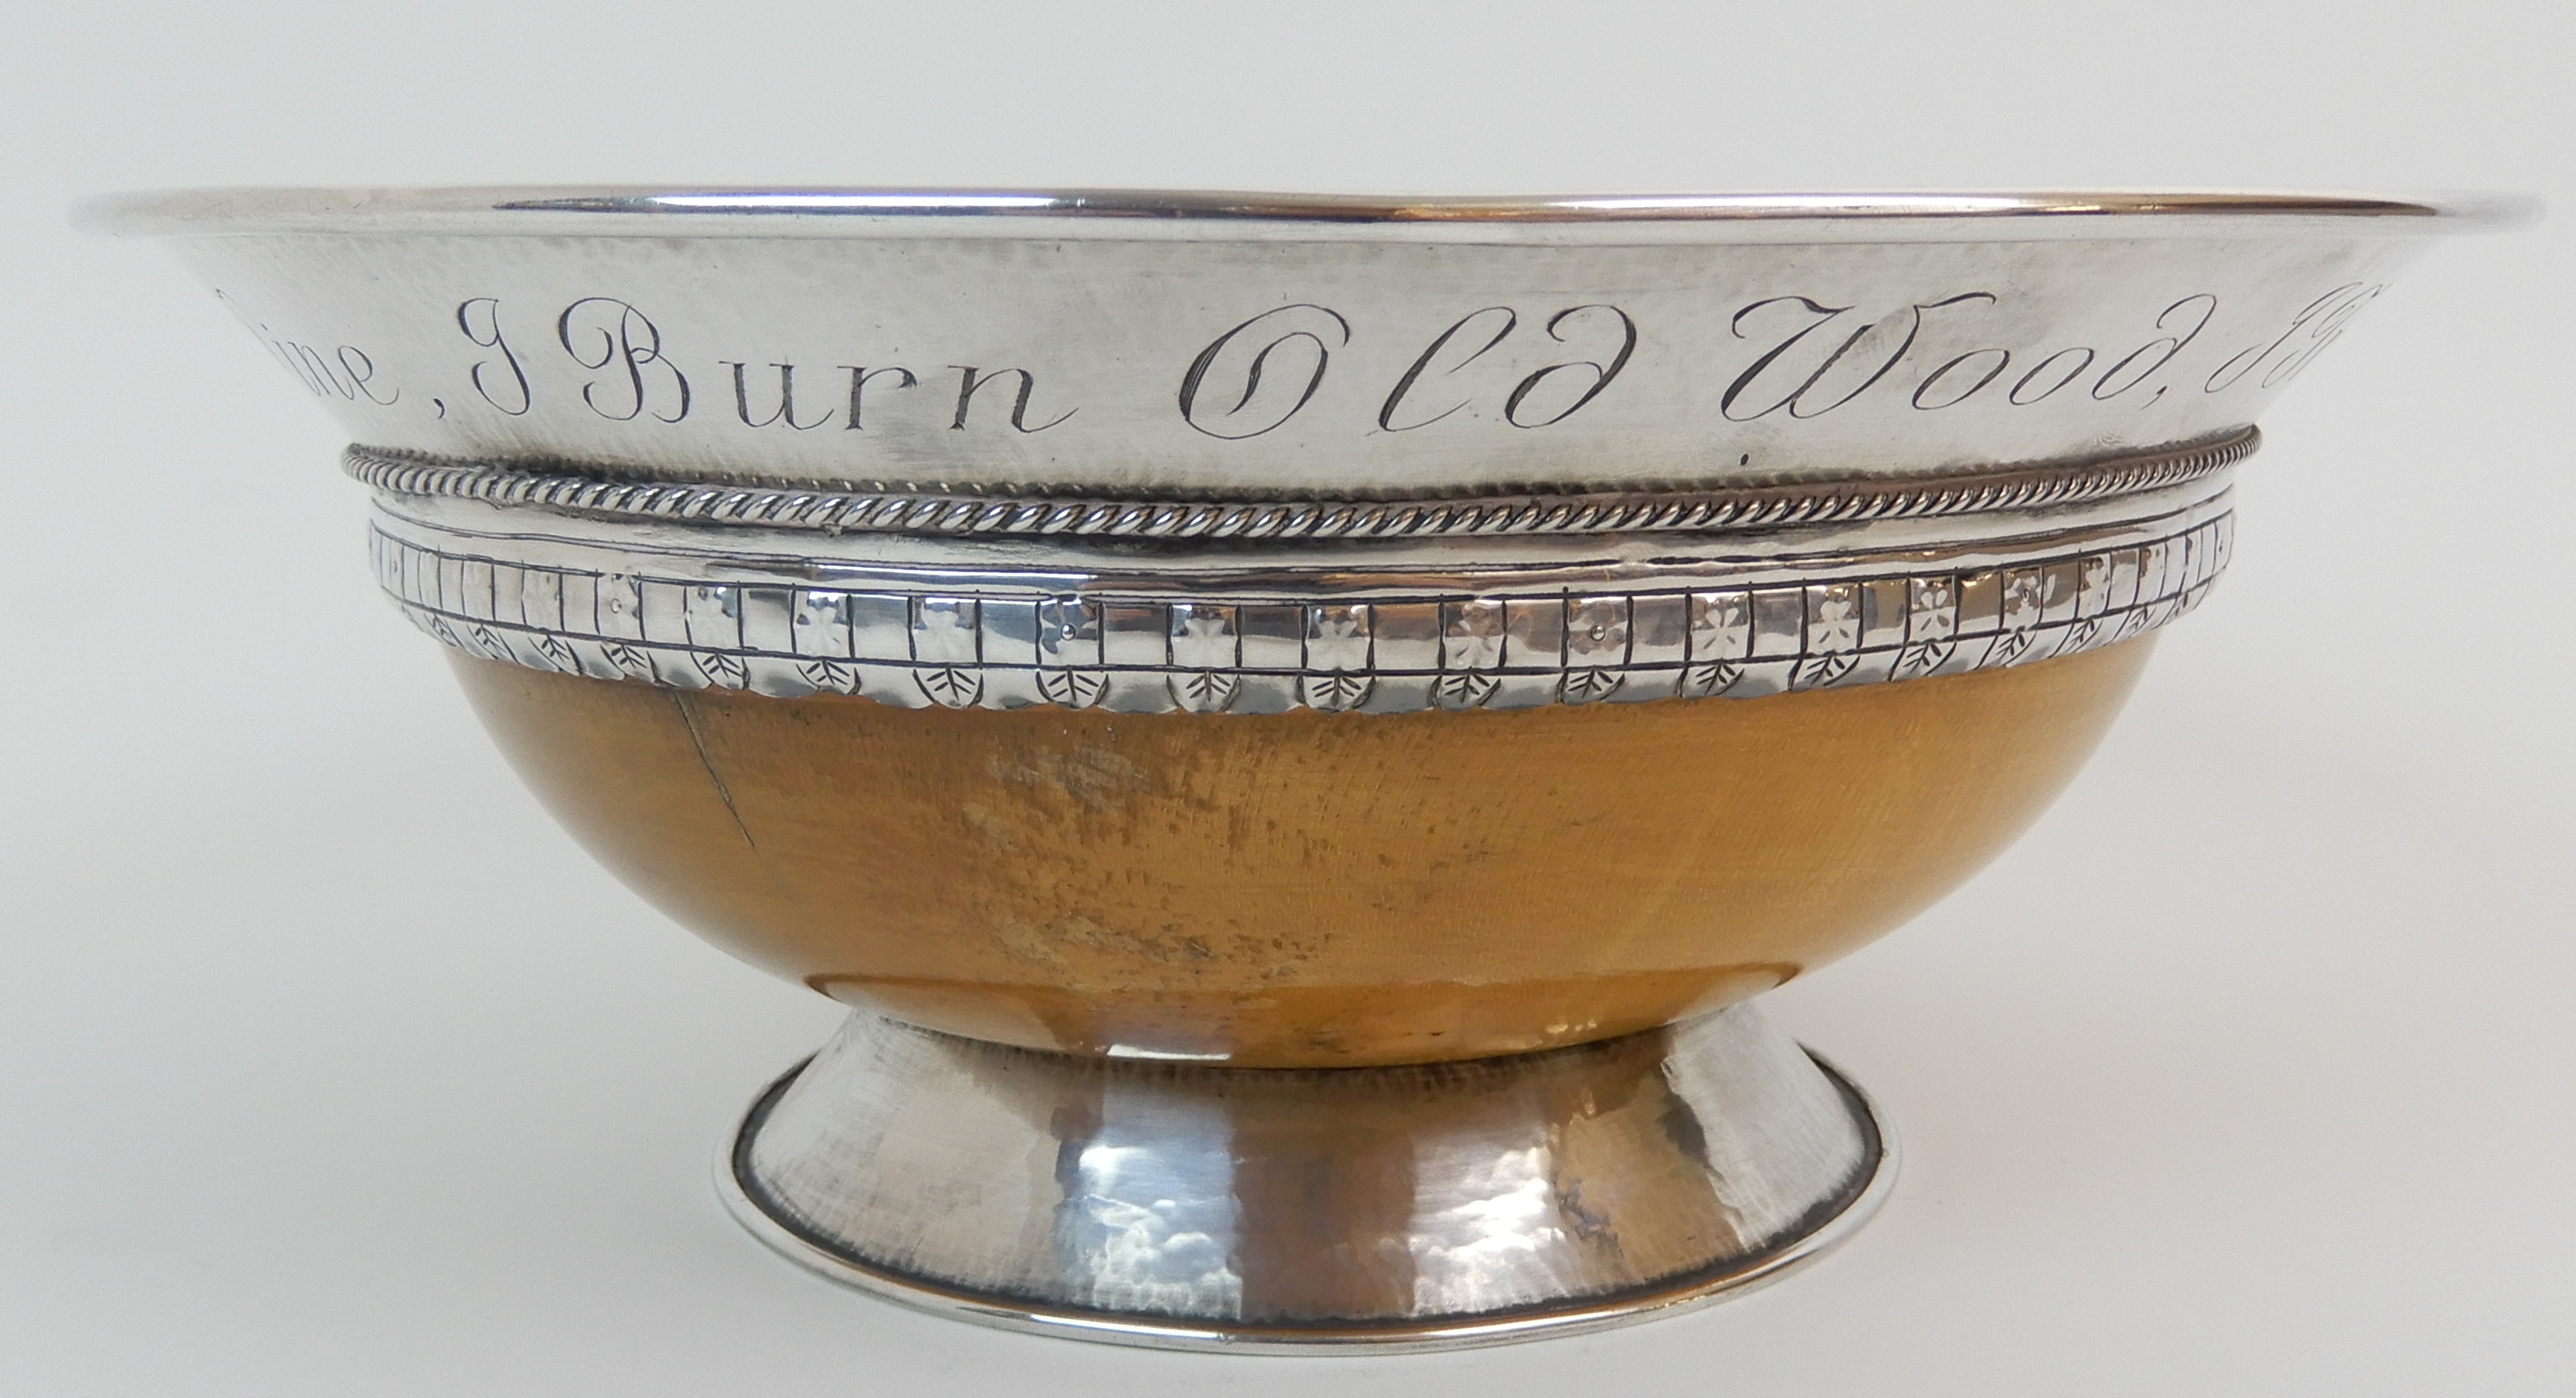 AN ARTS AND CRAFTS SILVER MOUNTED TREEN BOWL by Elizabeth Henry Kirkwood, Edinburgh 1947, or - Image 2 of 9